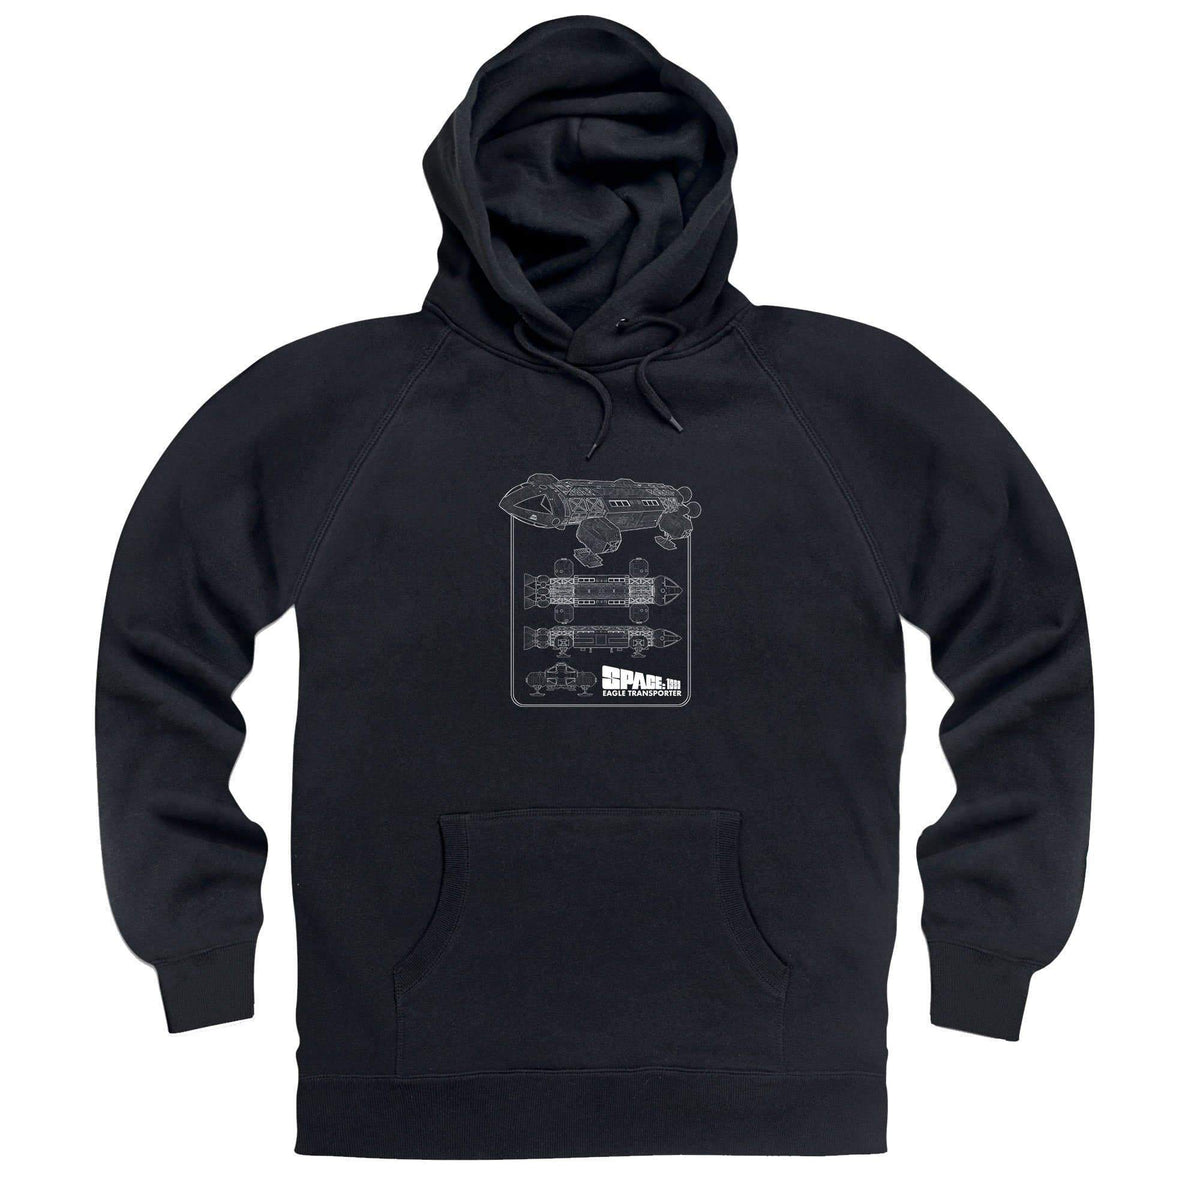 Space: 1999 Eagle Schematic Hoodie [Official & Exclusive] - The Gerry Anderson Store